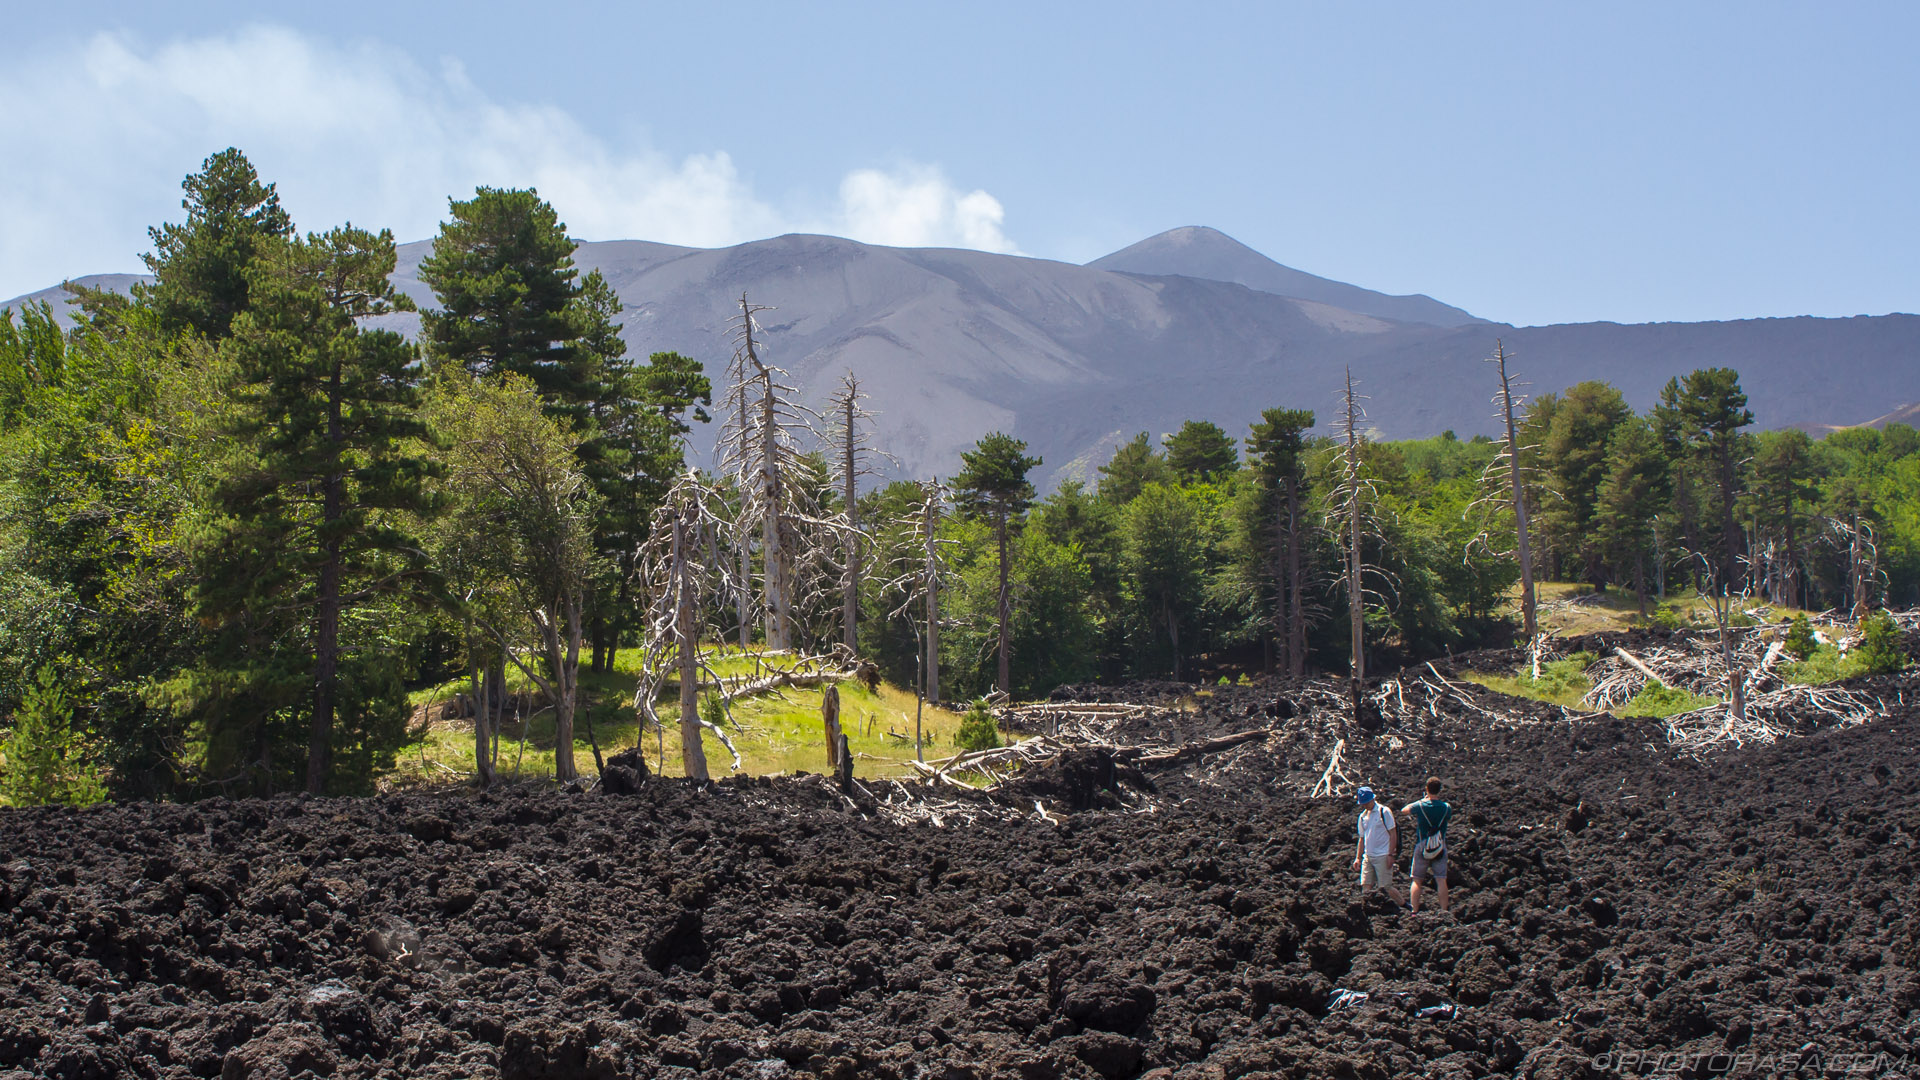 http://photorasa.com/mount-etna/aftermath-of-2002-lava-flow/